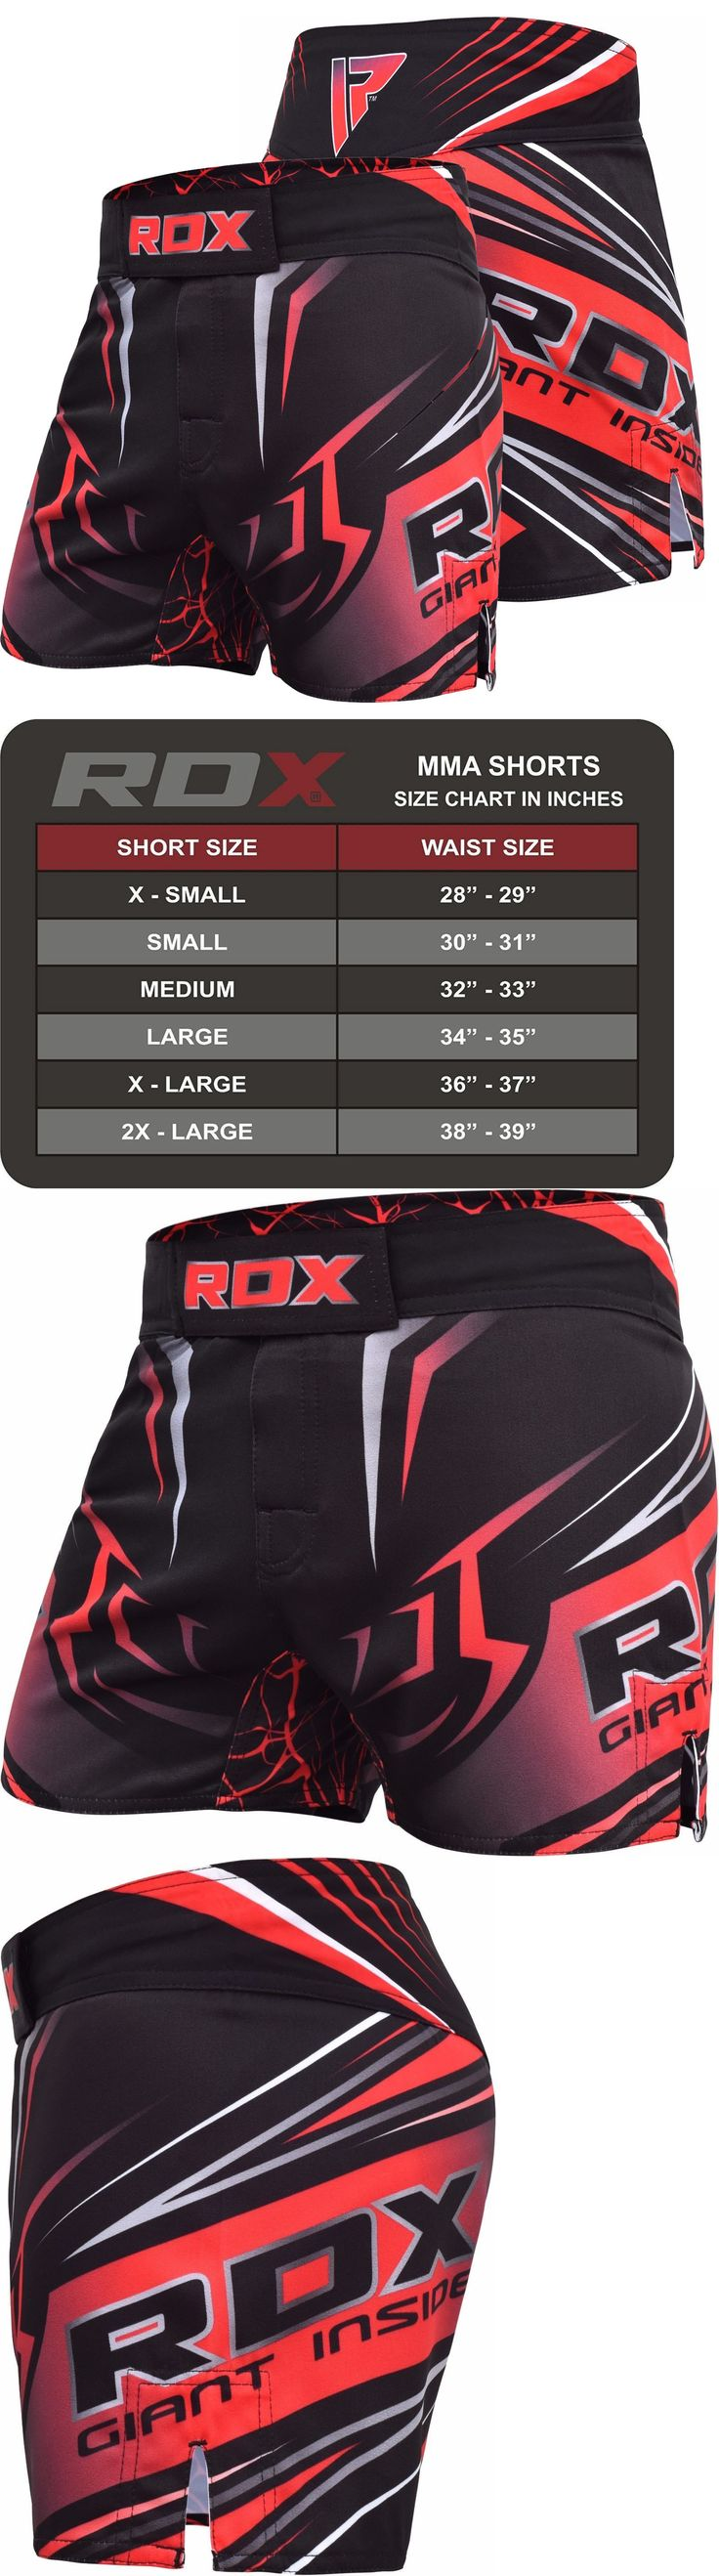 Shorts 73982: Rdx Mma Shorts Boxing Mens Muay Thai Grappling Ufc Kick Cage Fighting Red -> BUY IT NOW ONLY: $44.99 on eBay!